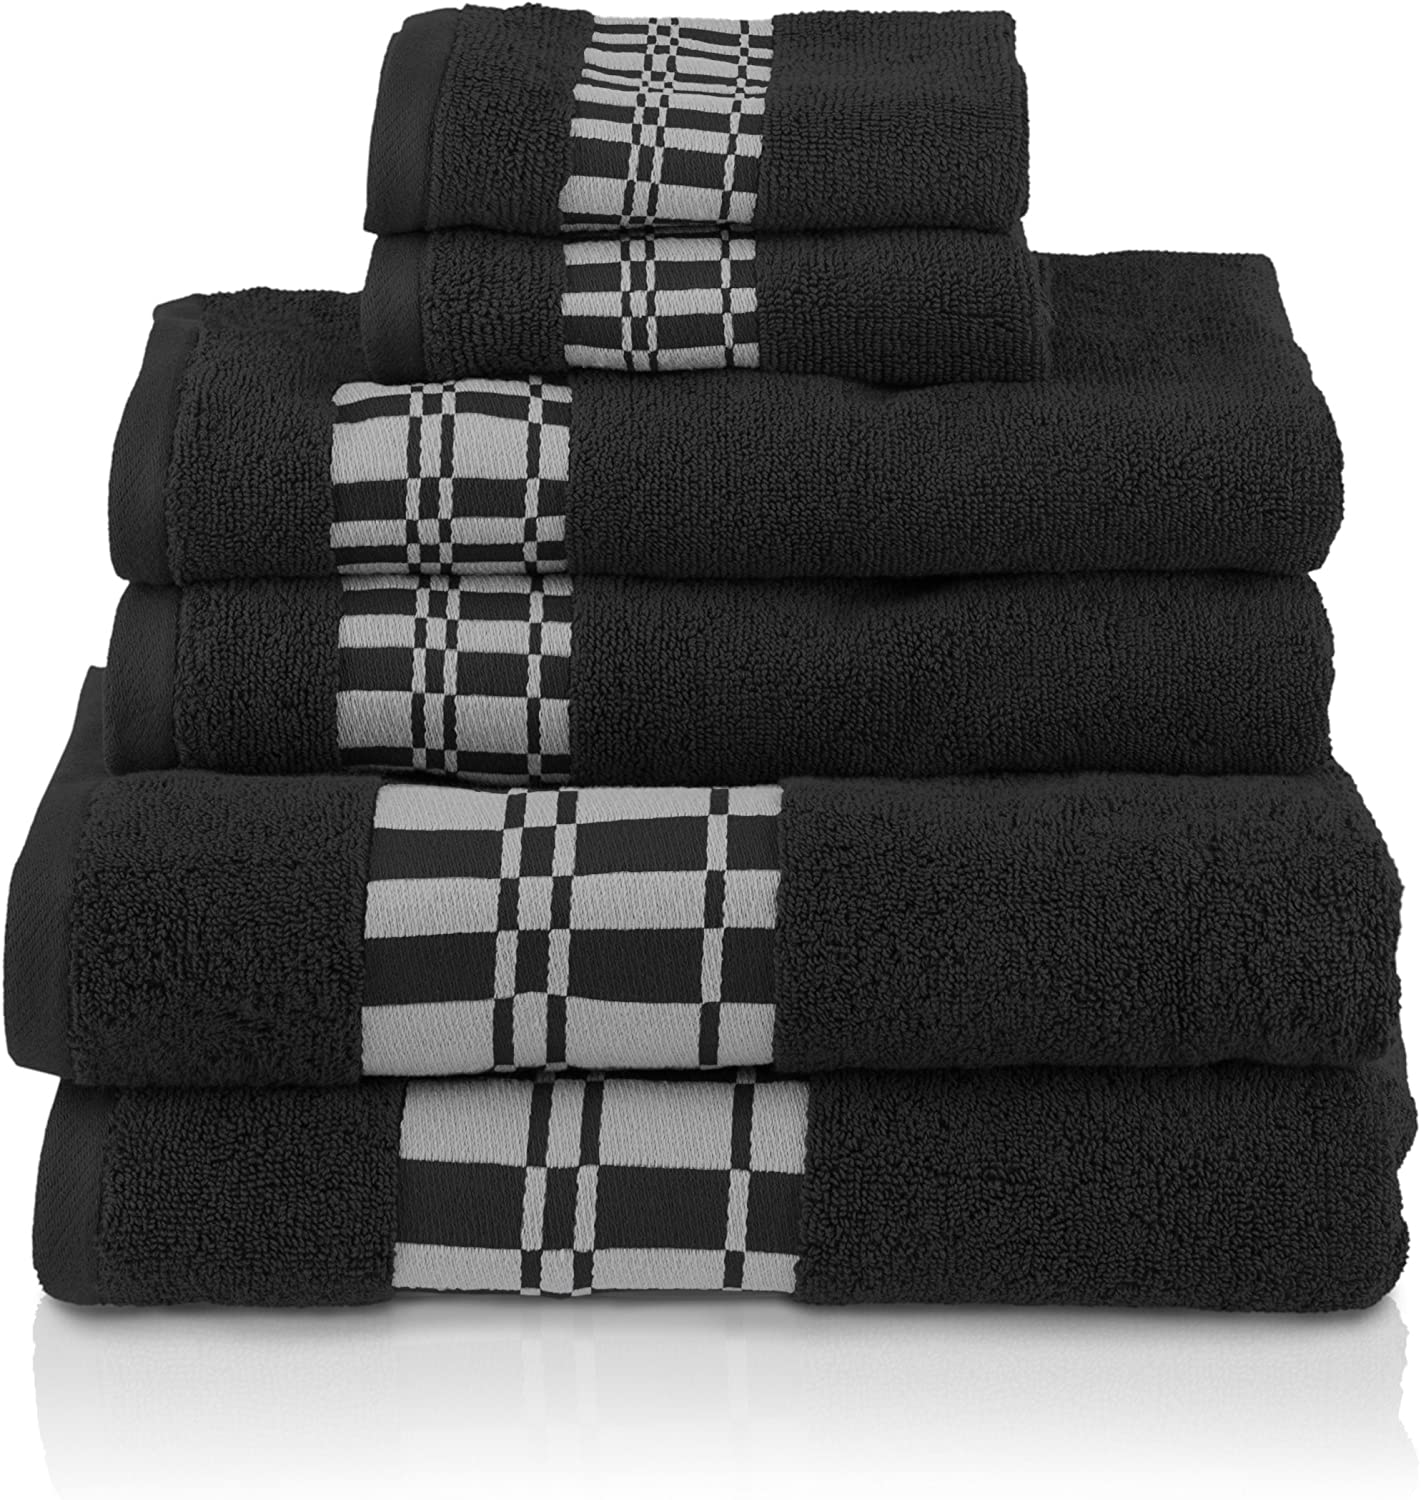 Superior Larissa 100% Cotton, Soft, Extremely Absorbent, Beautiful 6 Piece Towel Set, Black